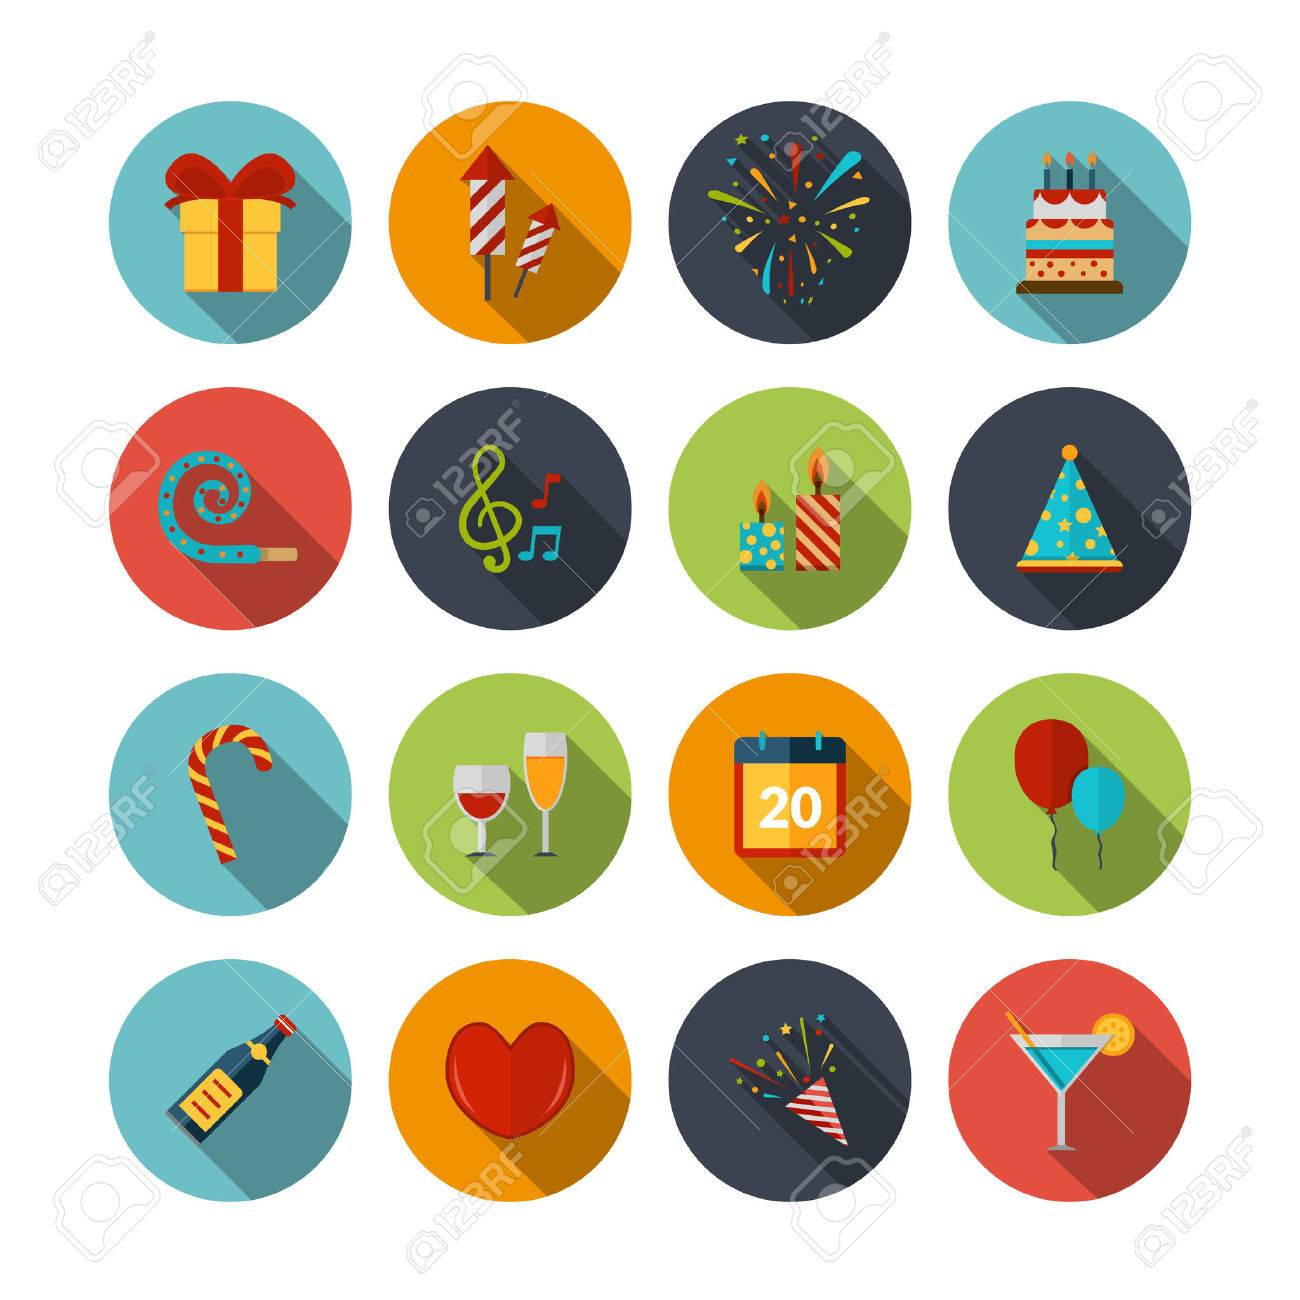 Celebration icons set with cocktail confetti fireworks cake balloons isolated vector illustration Stock Vector - 37810849